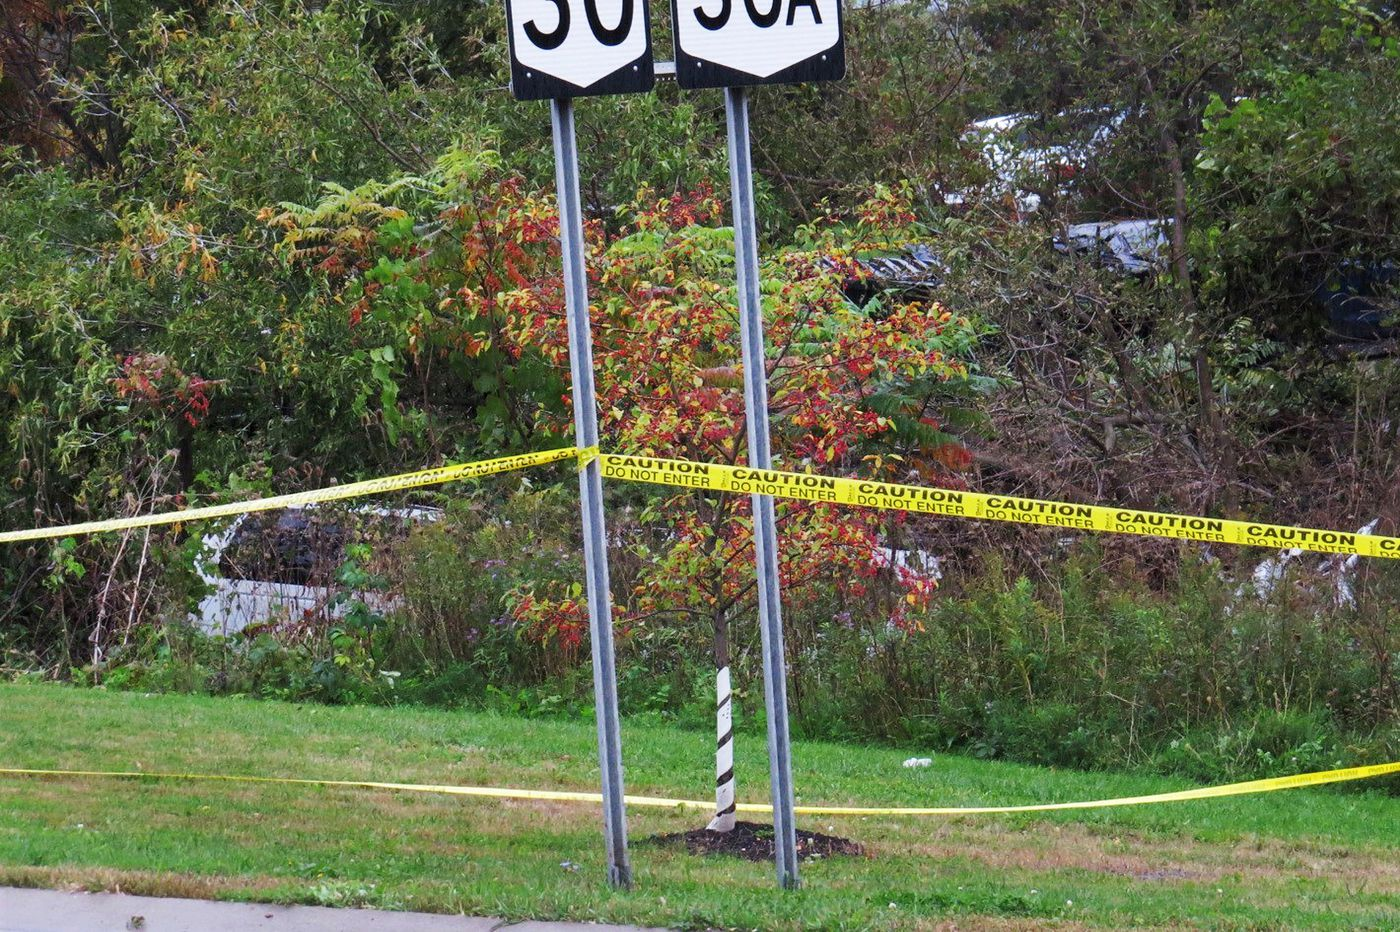 Feds to examine limo 3 months after wreck that killed 20